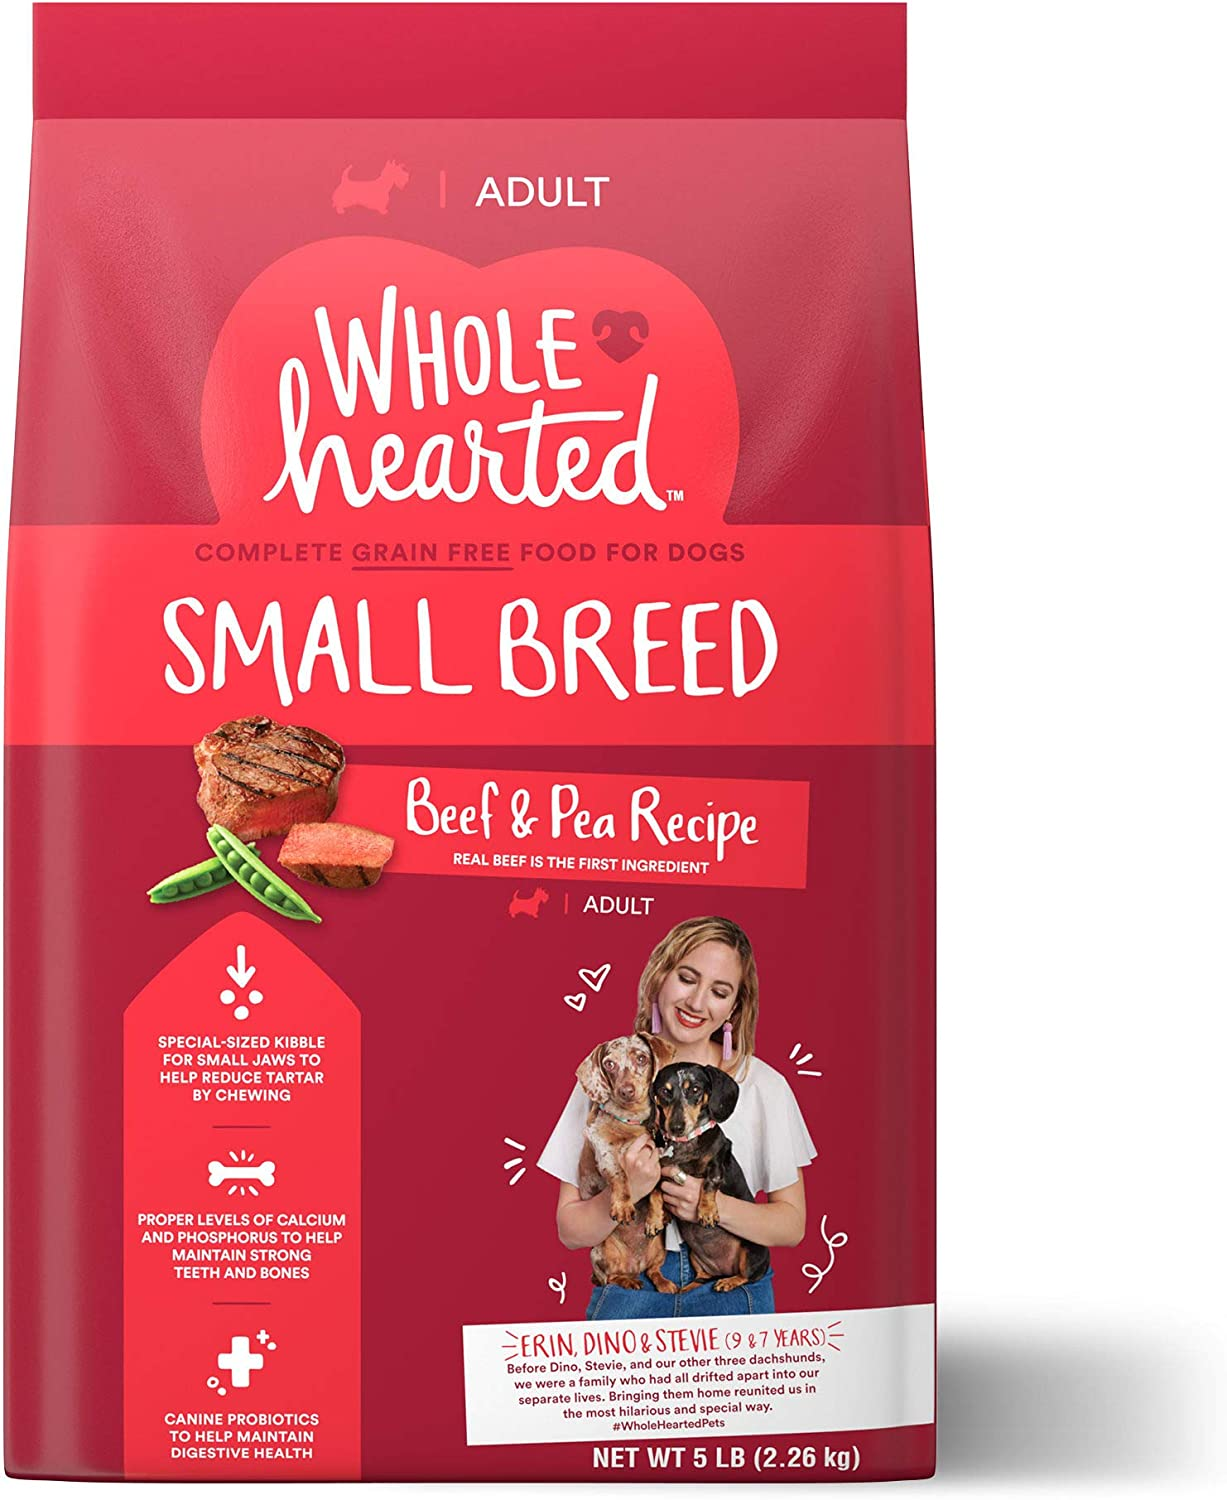 WholeHearted Grain Free Small-Breed Beef and Pea Recipe Adult Dry Dog Food, 5 lbs.